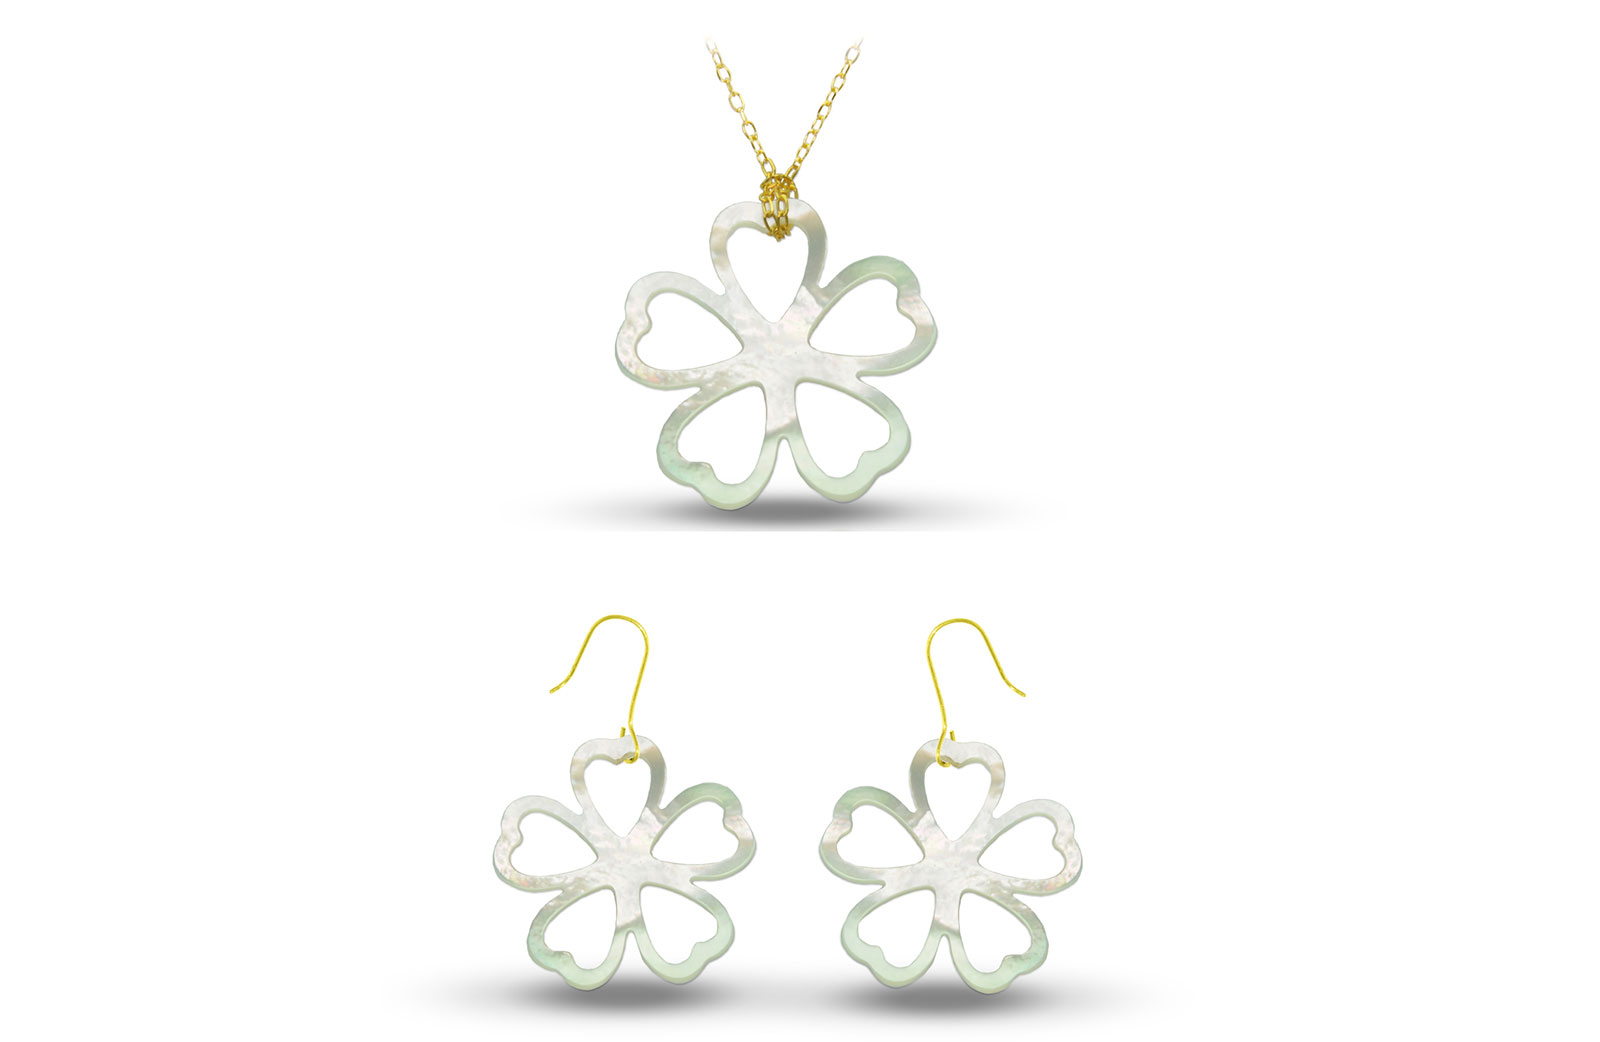 Vera Perla 18K Gold Lucky Clover Mother of Pearl Jewelry Set, 2 pcs